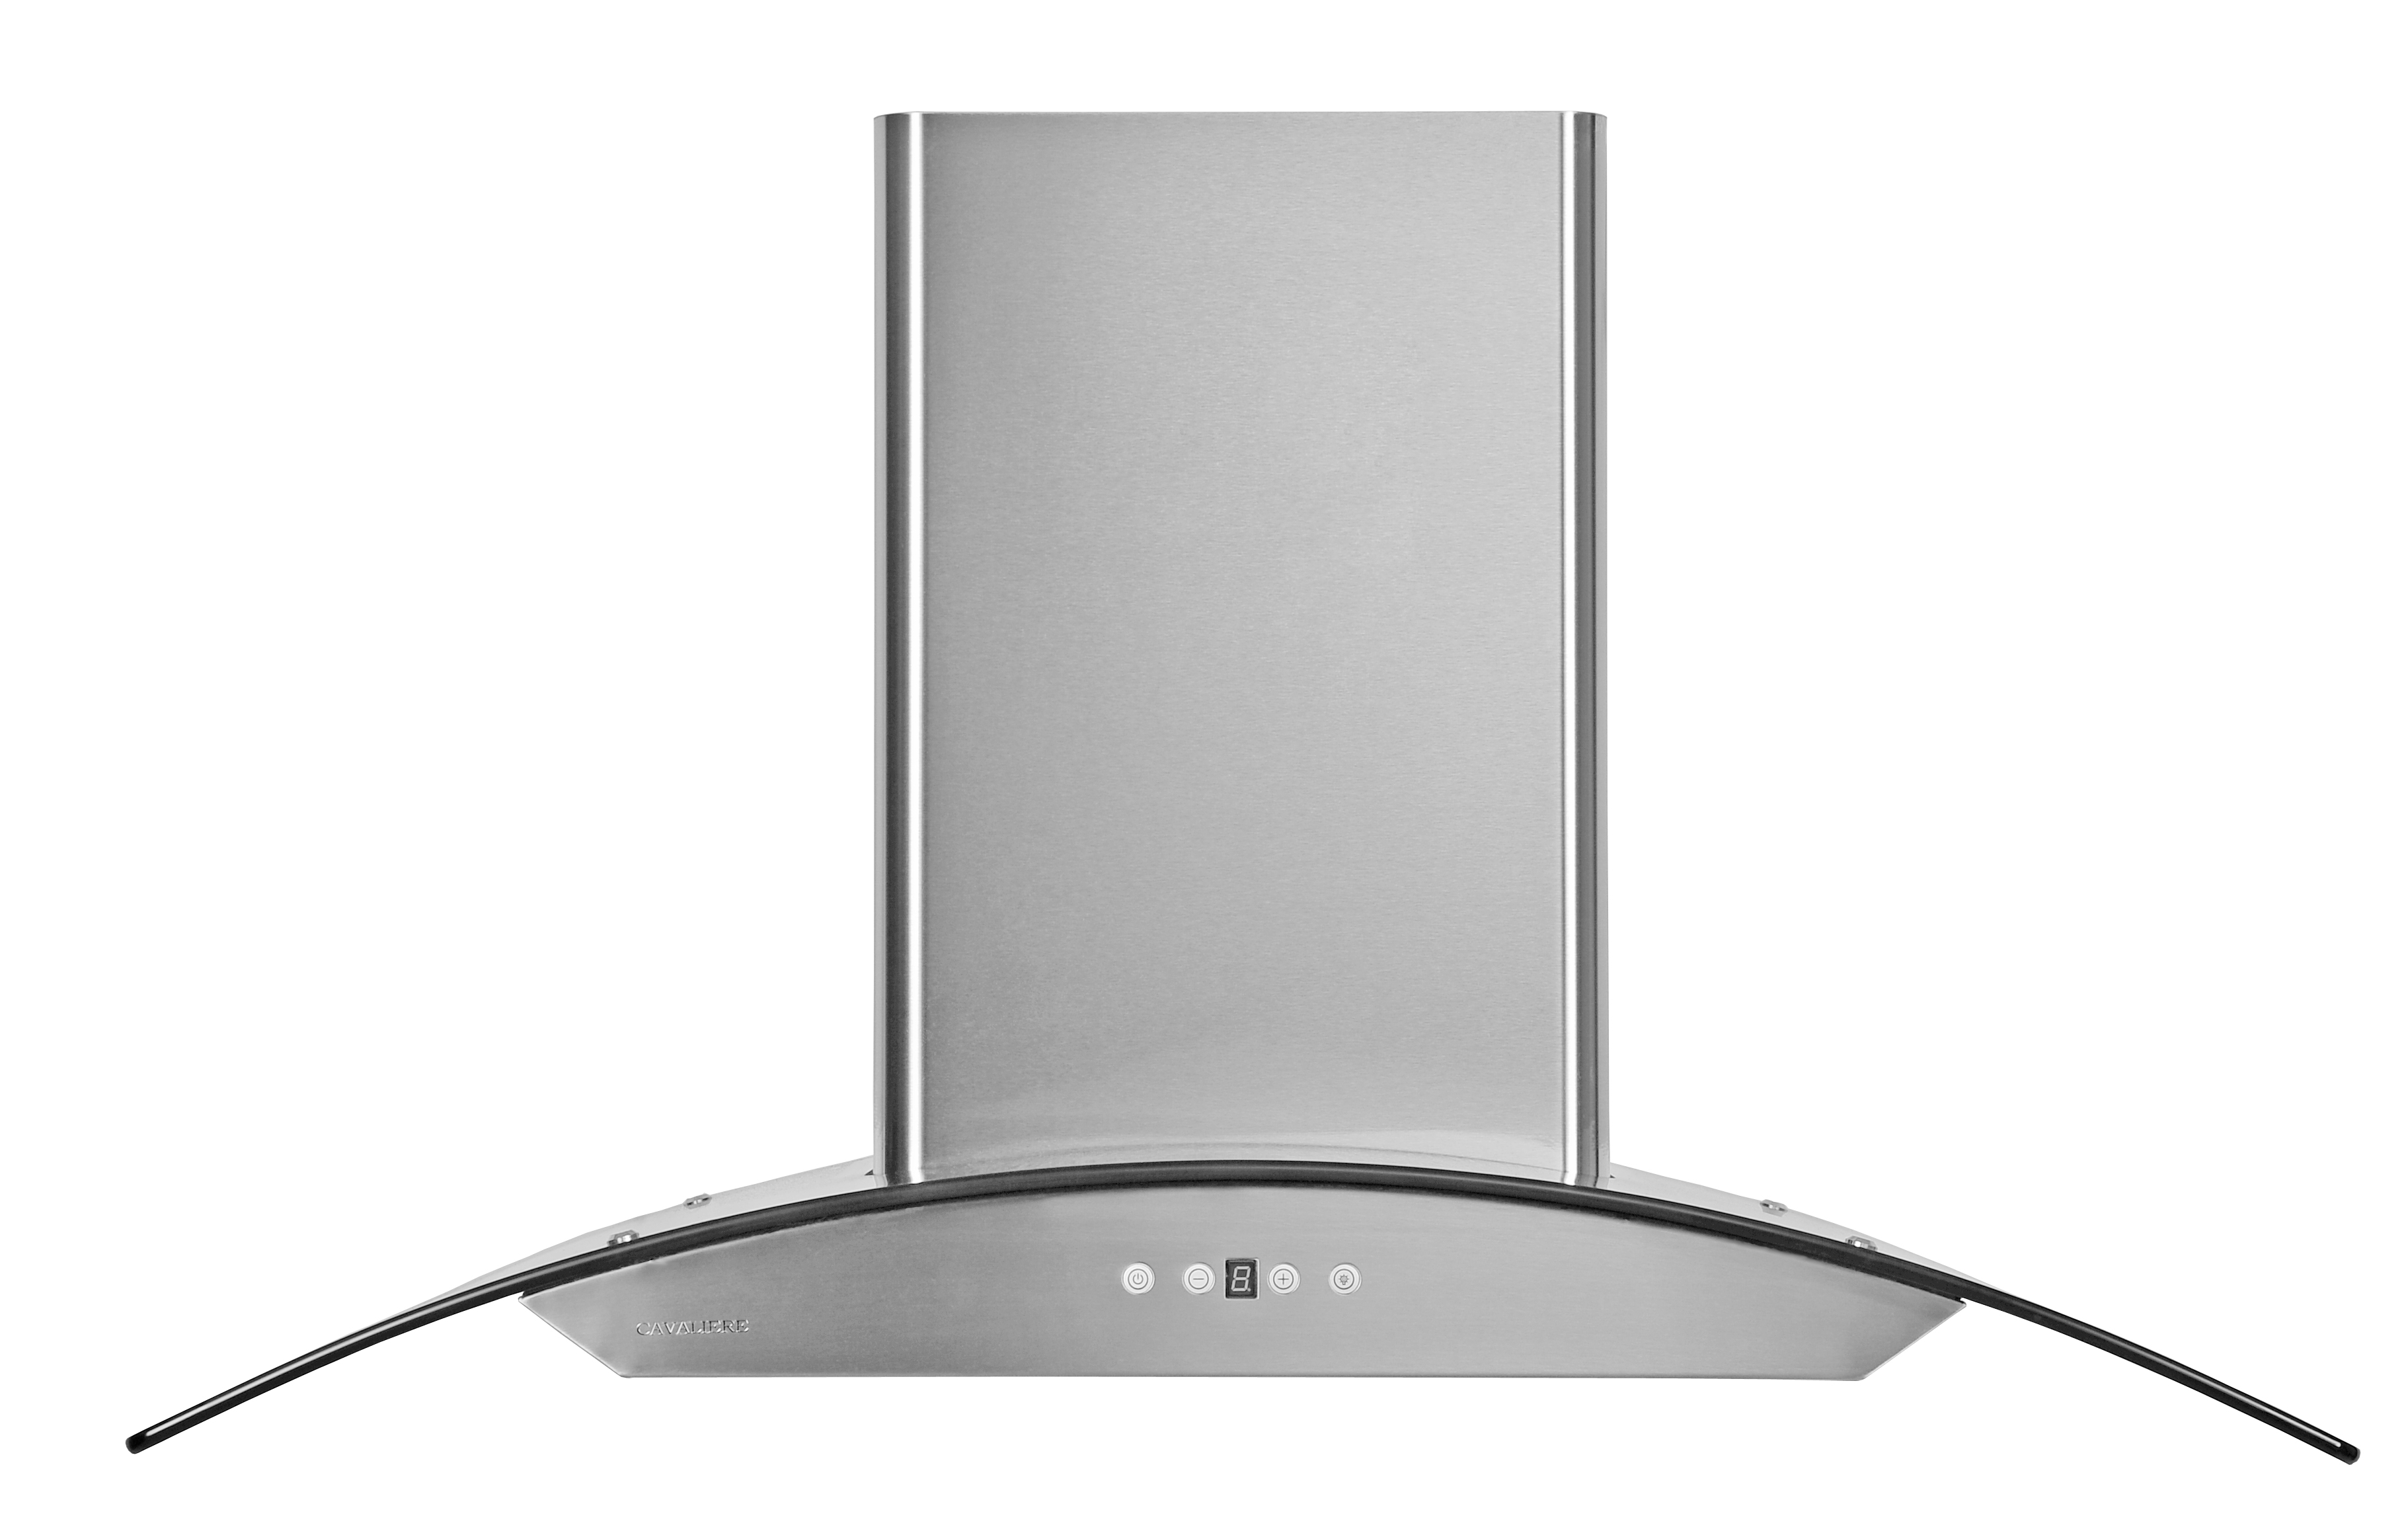 Details about CAVALIERE 30 WALL MOUNT RANGE HOOD STAINLESS AP238 PSD  #383838